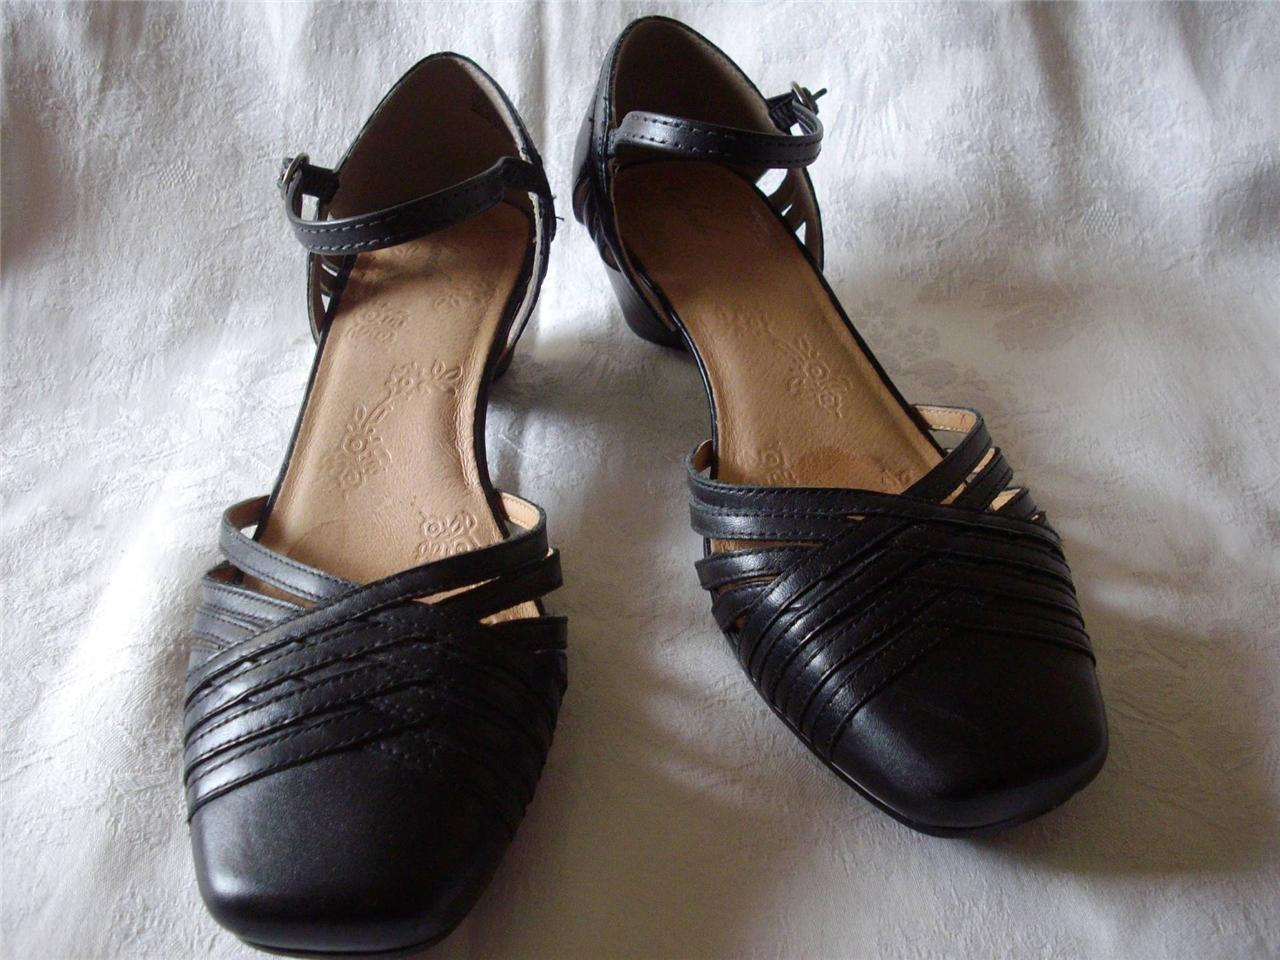 Designer-Ladies-Leather-Shoes-Black-Mary-Jane-style-Flat-Size-7-5-Very-Good